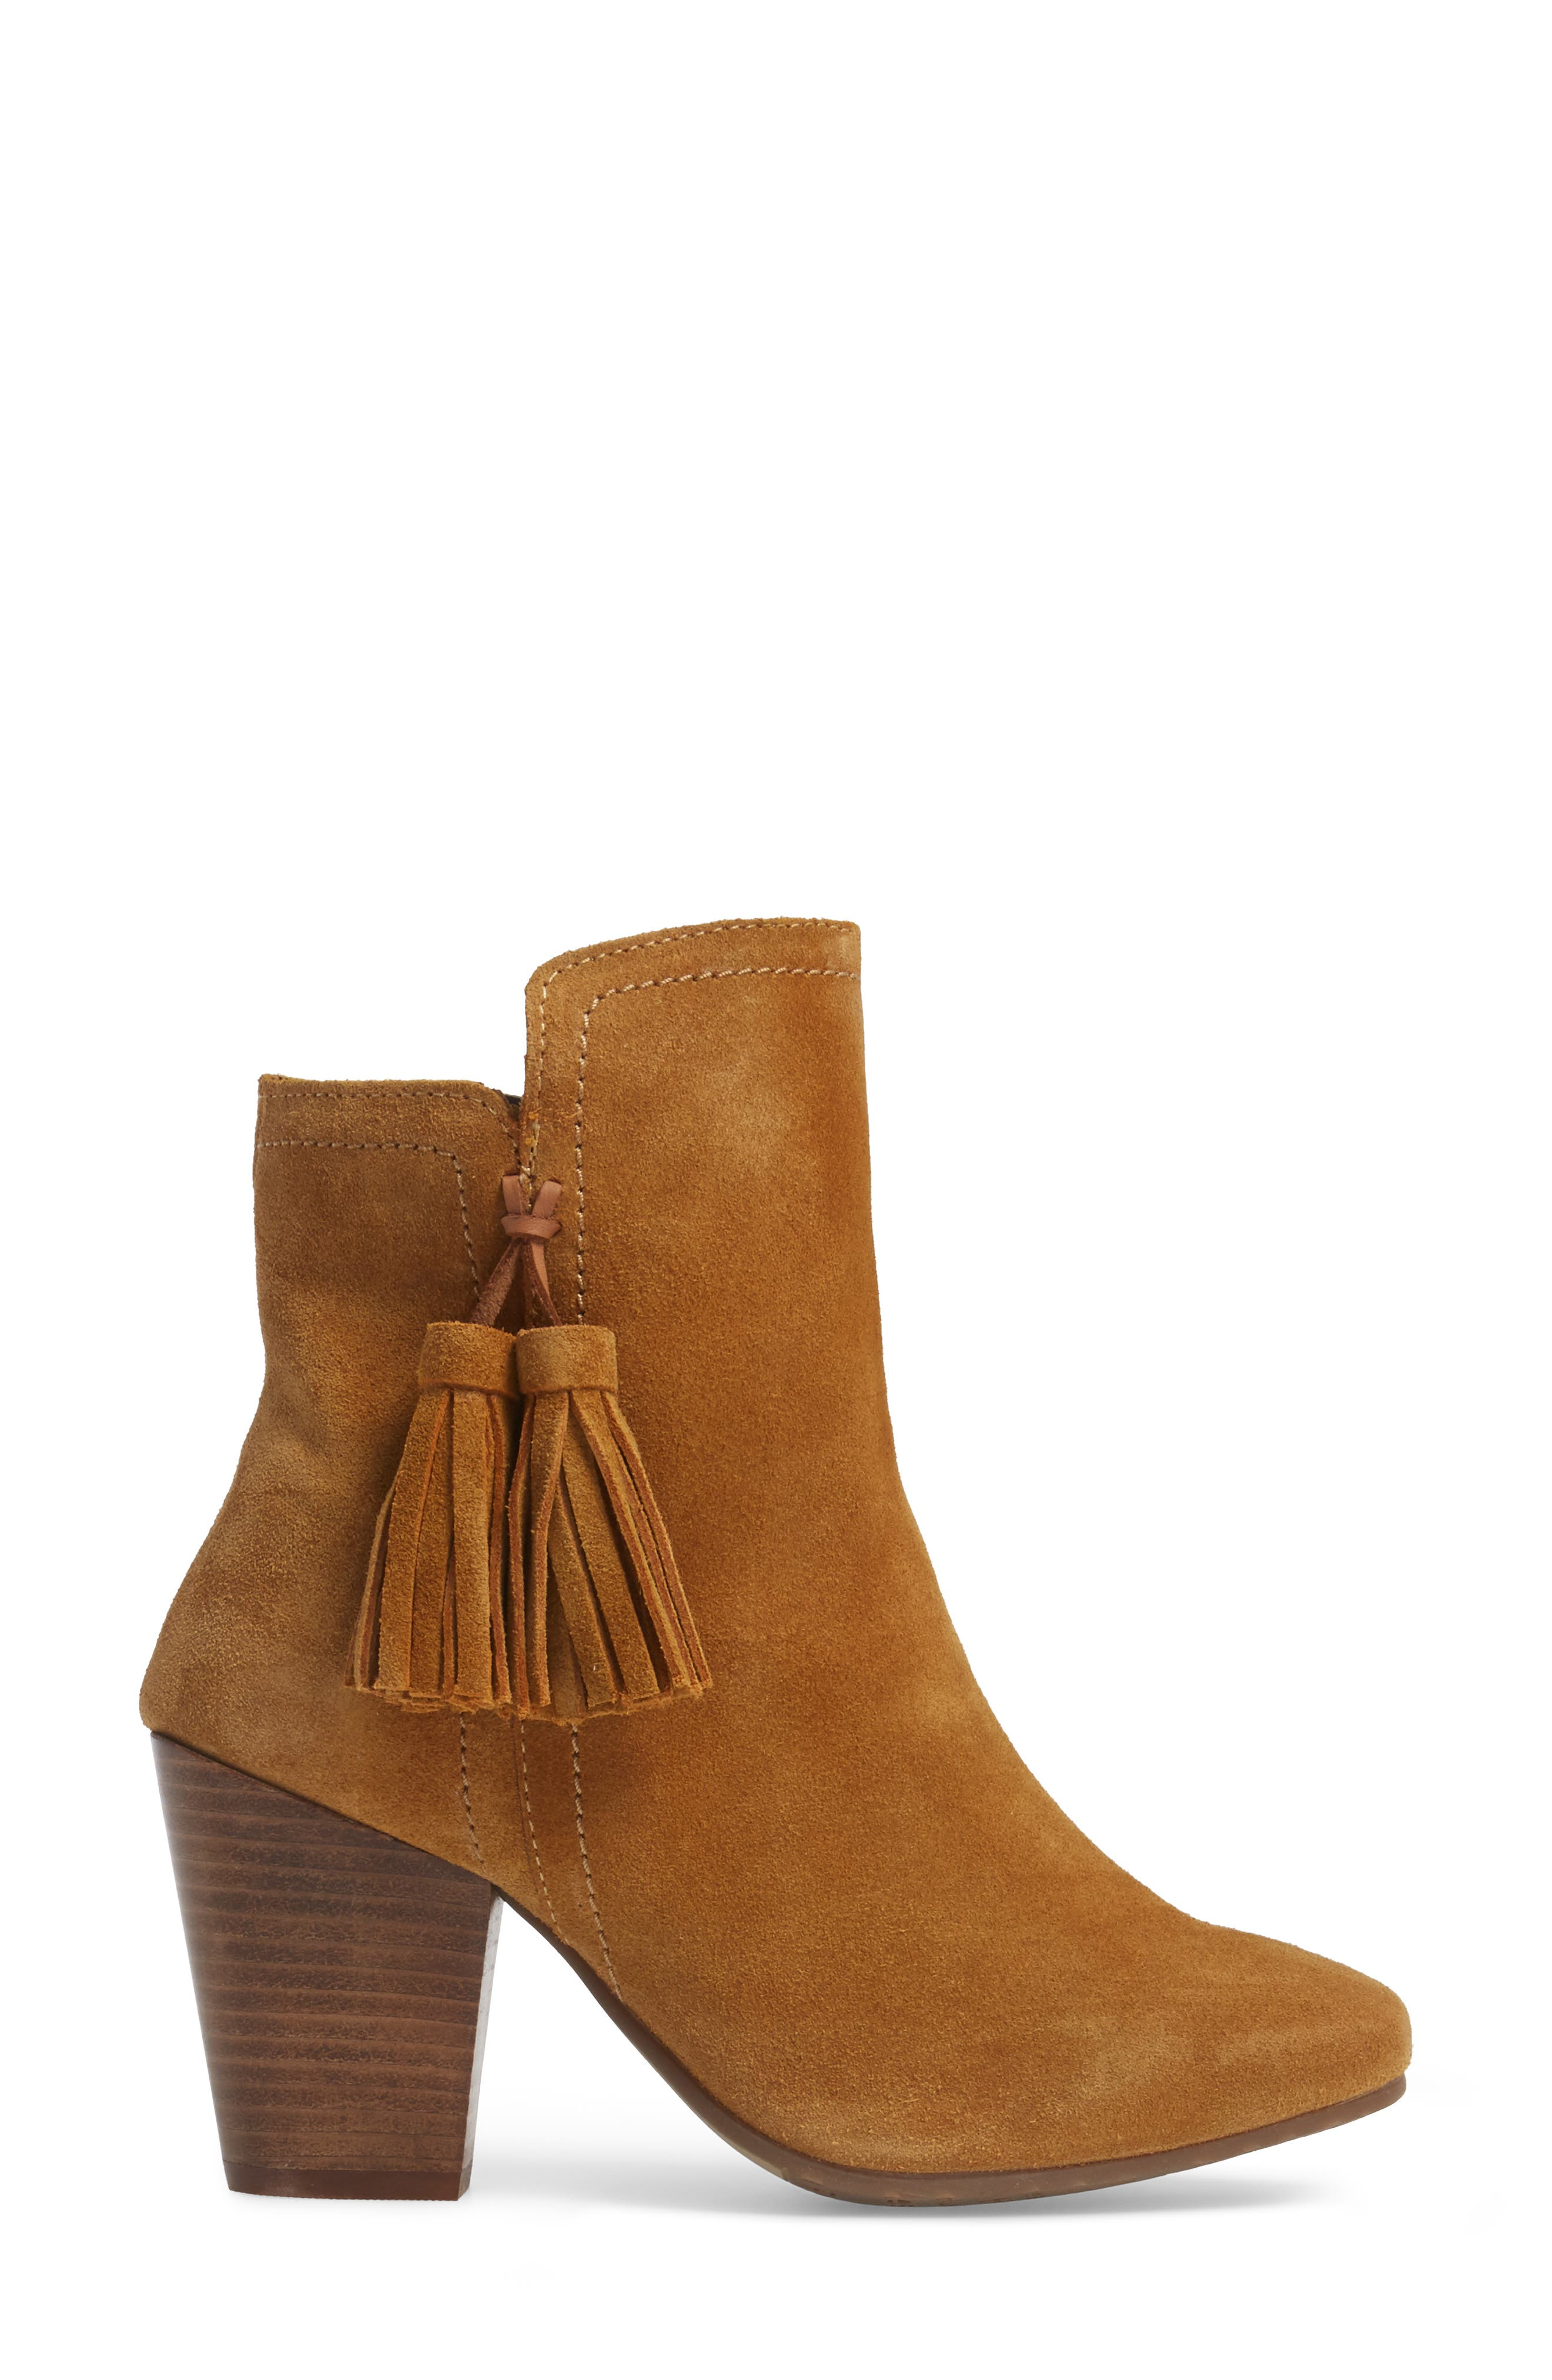 Daisee Billie Bootie,                             Alternate thumbnail 3, color,                             Camel Suede